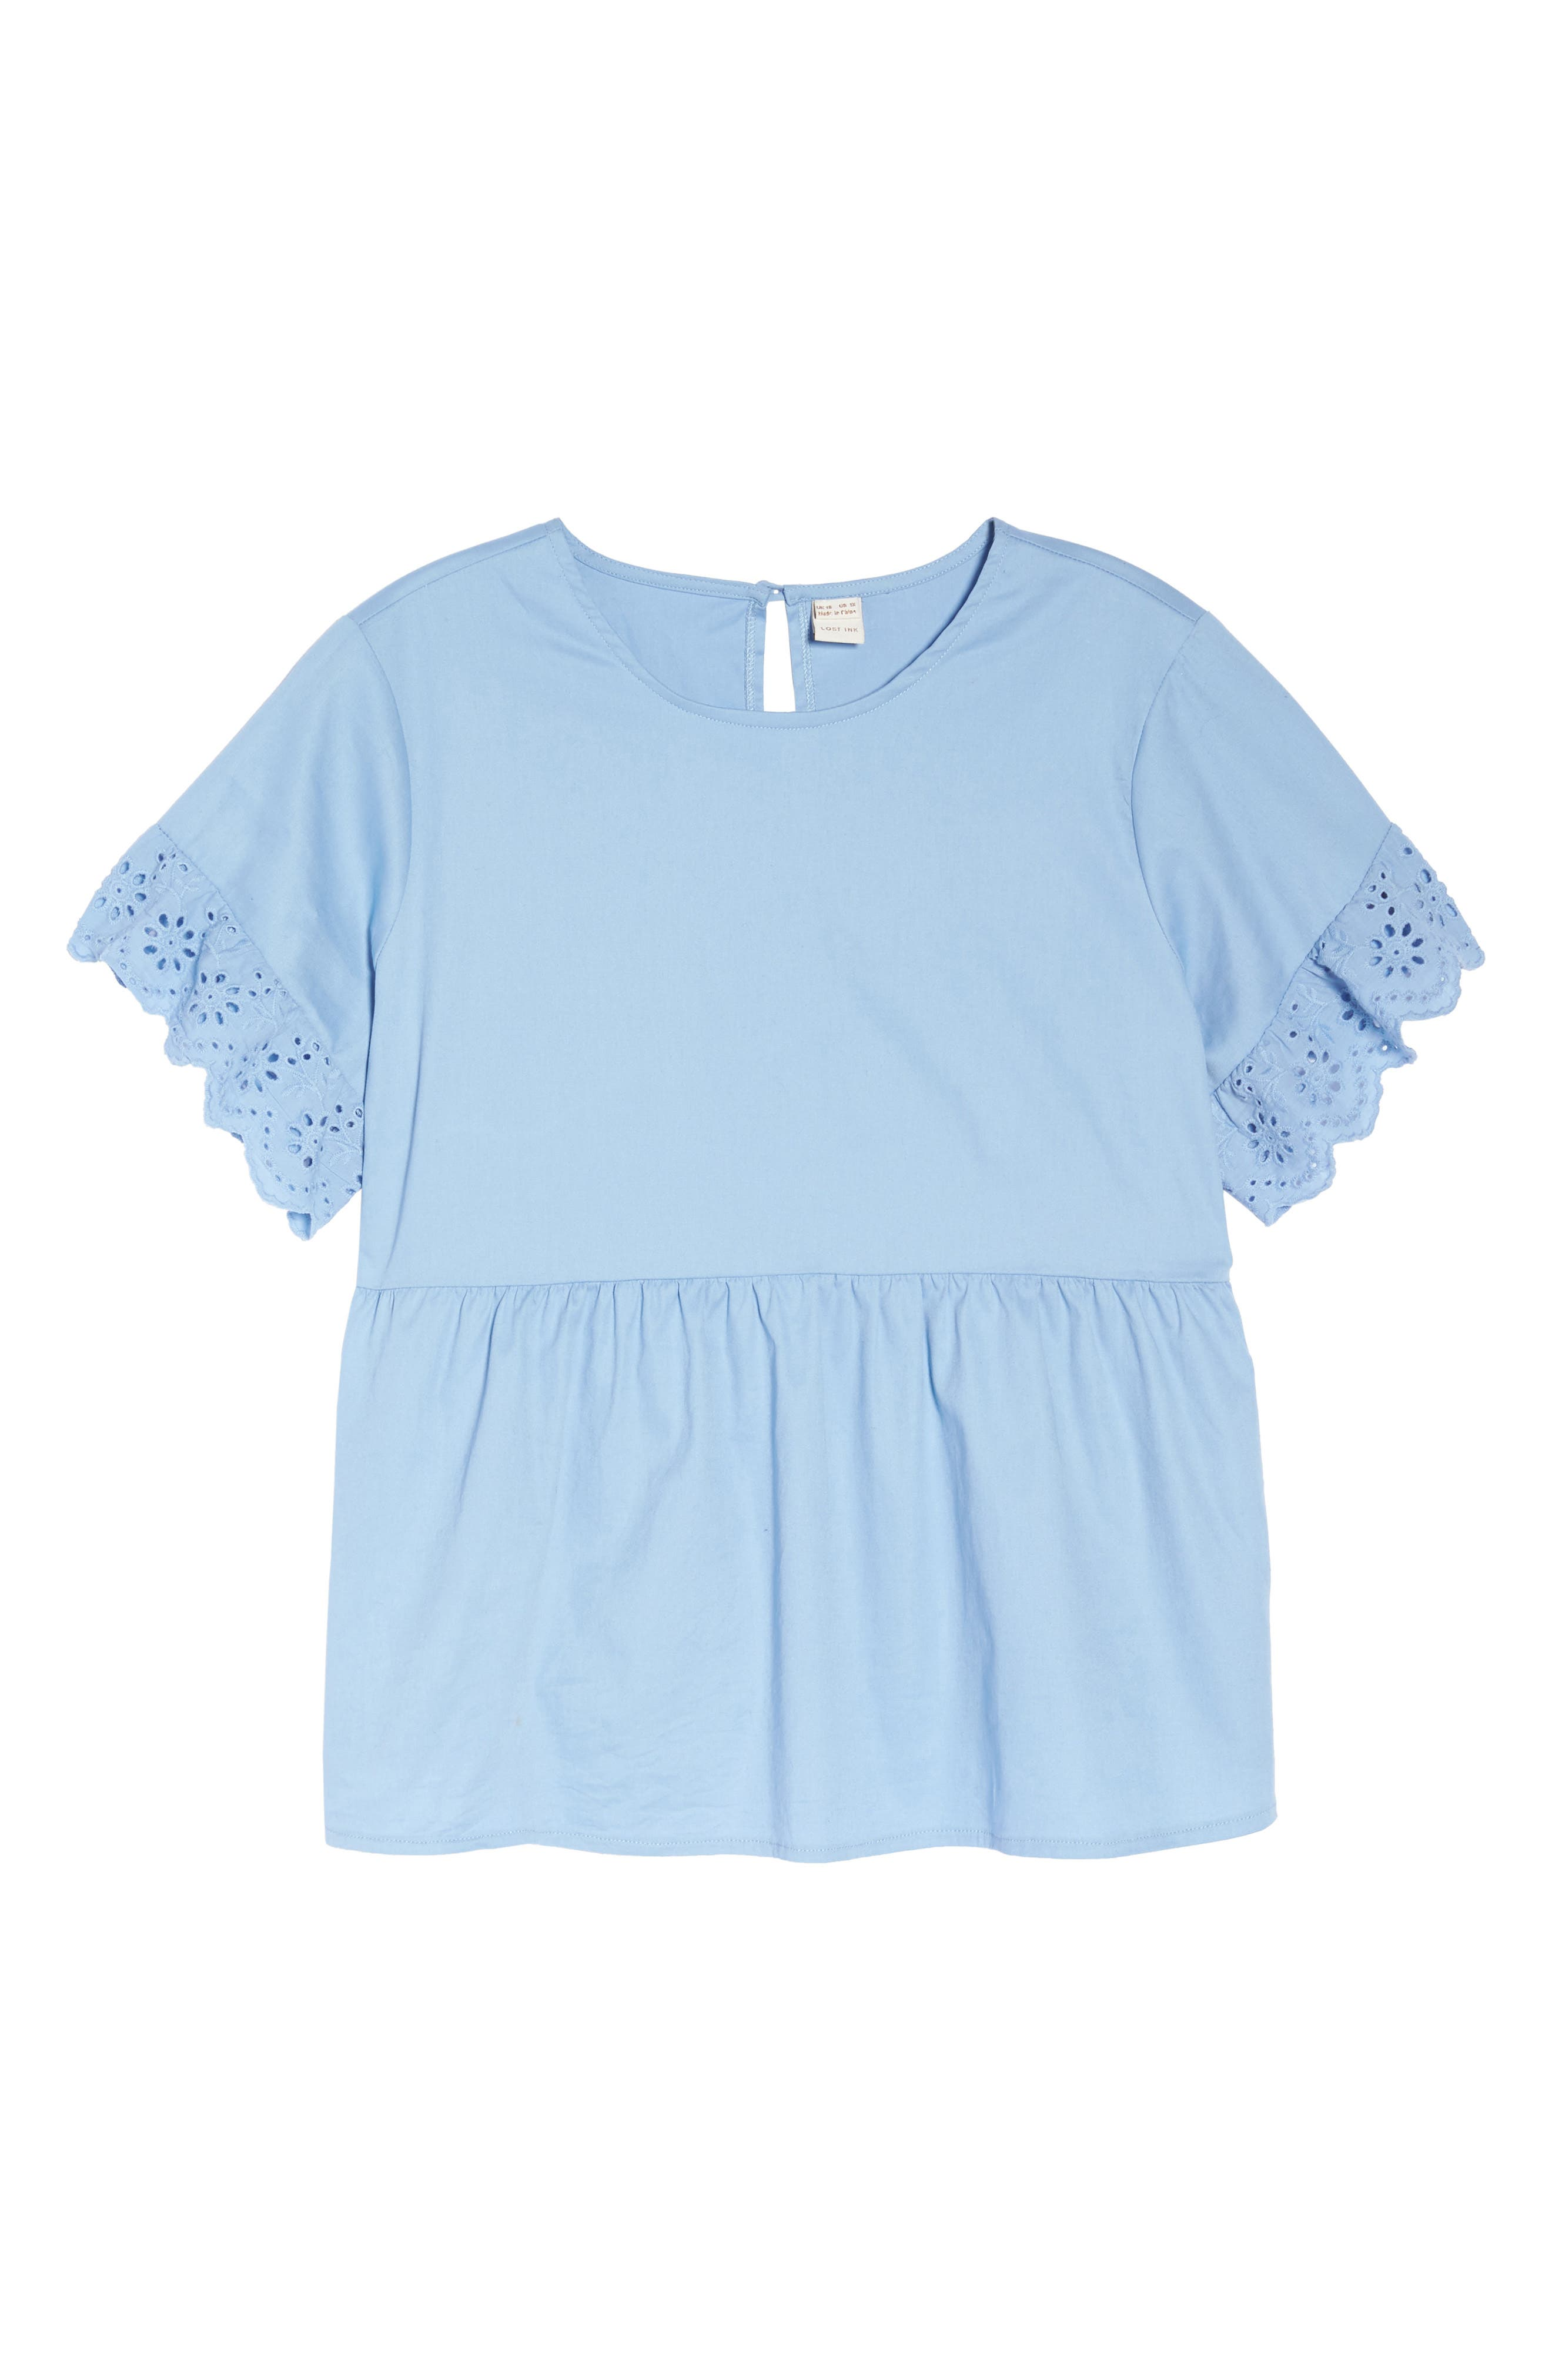 Daisy Trim Swing Top,                             Alternate thumbnail 7, color,                             Blue